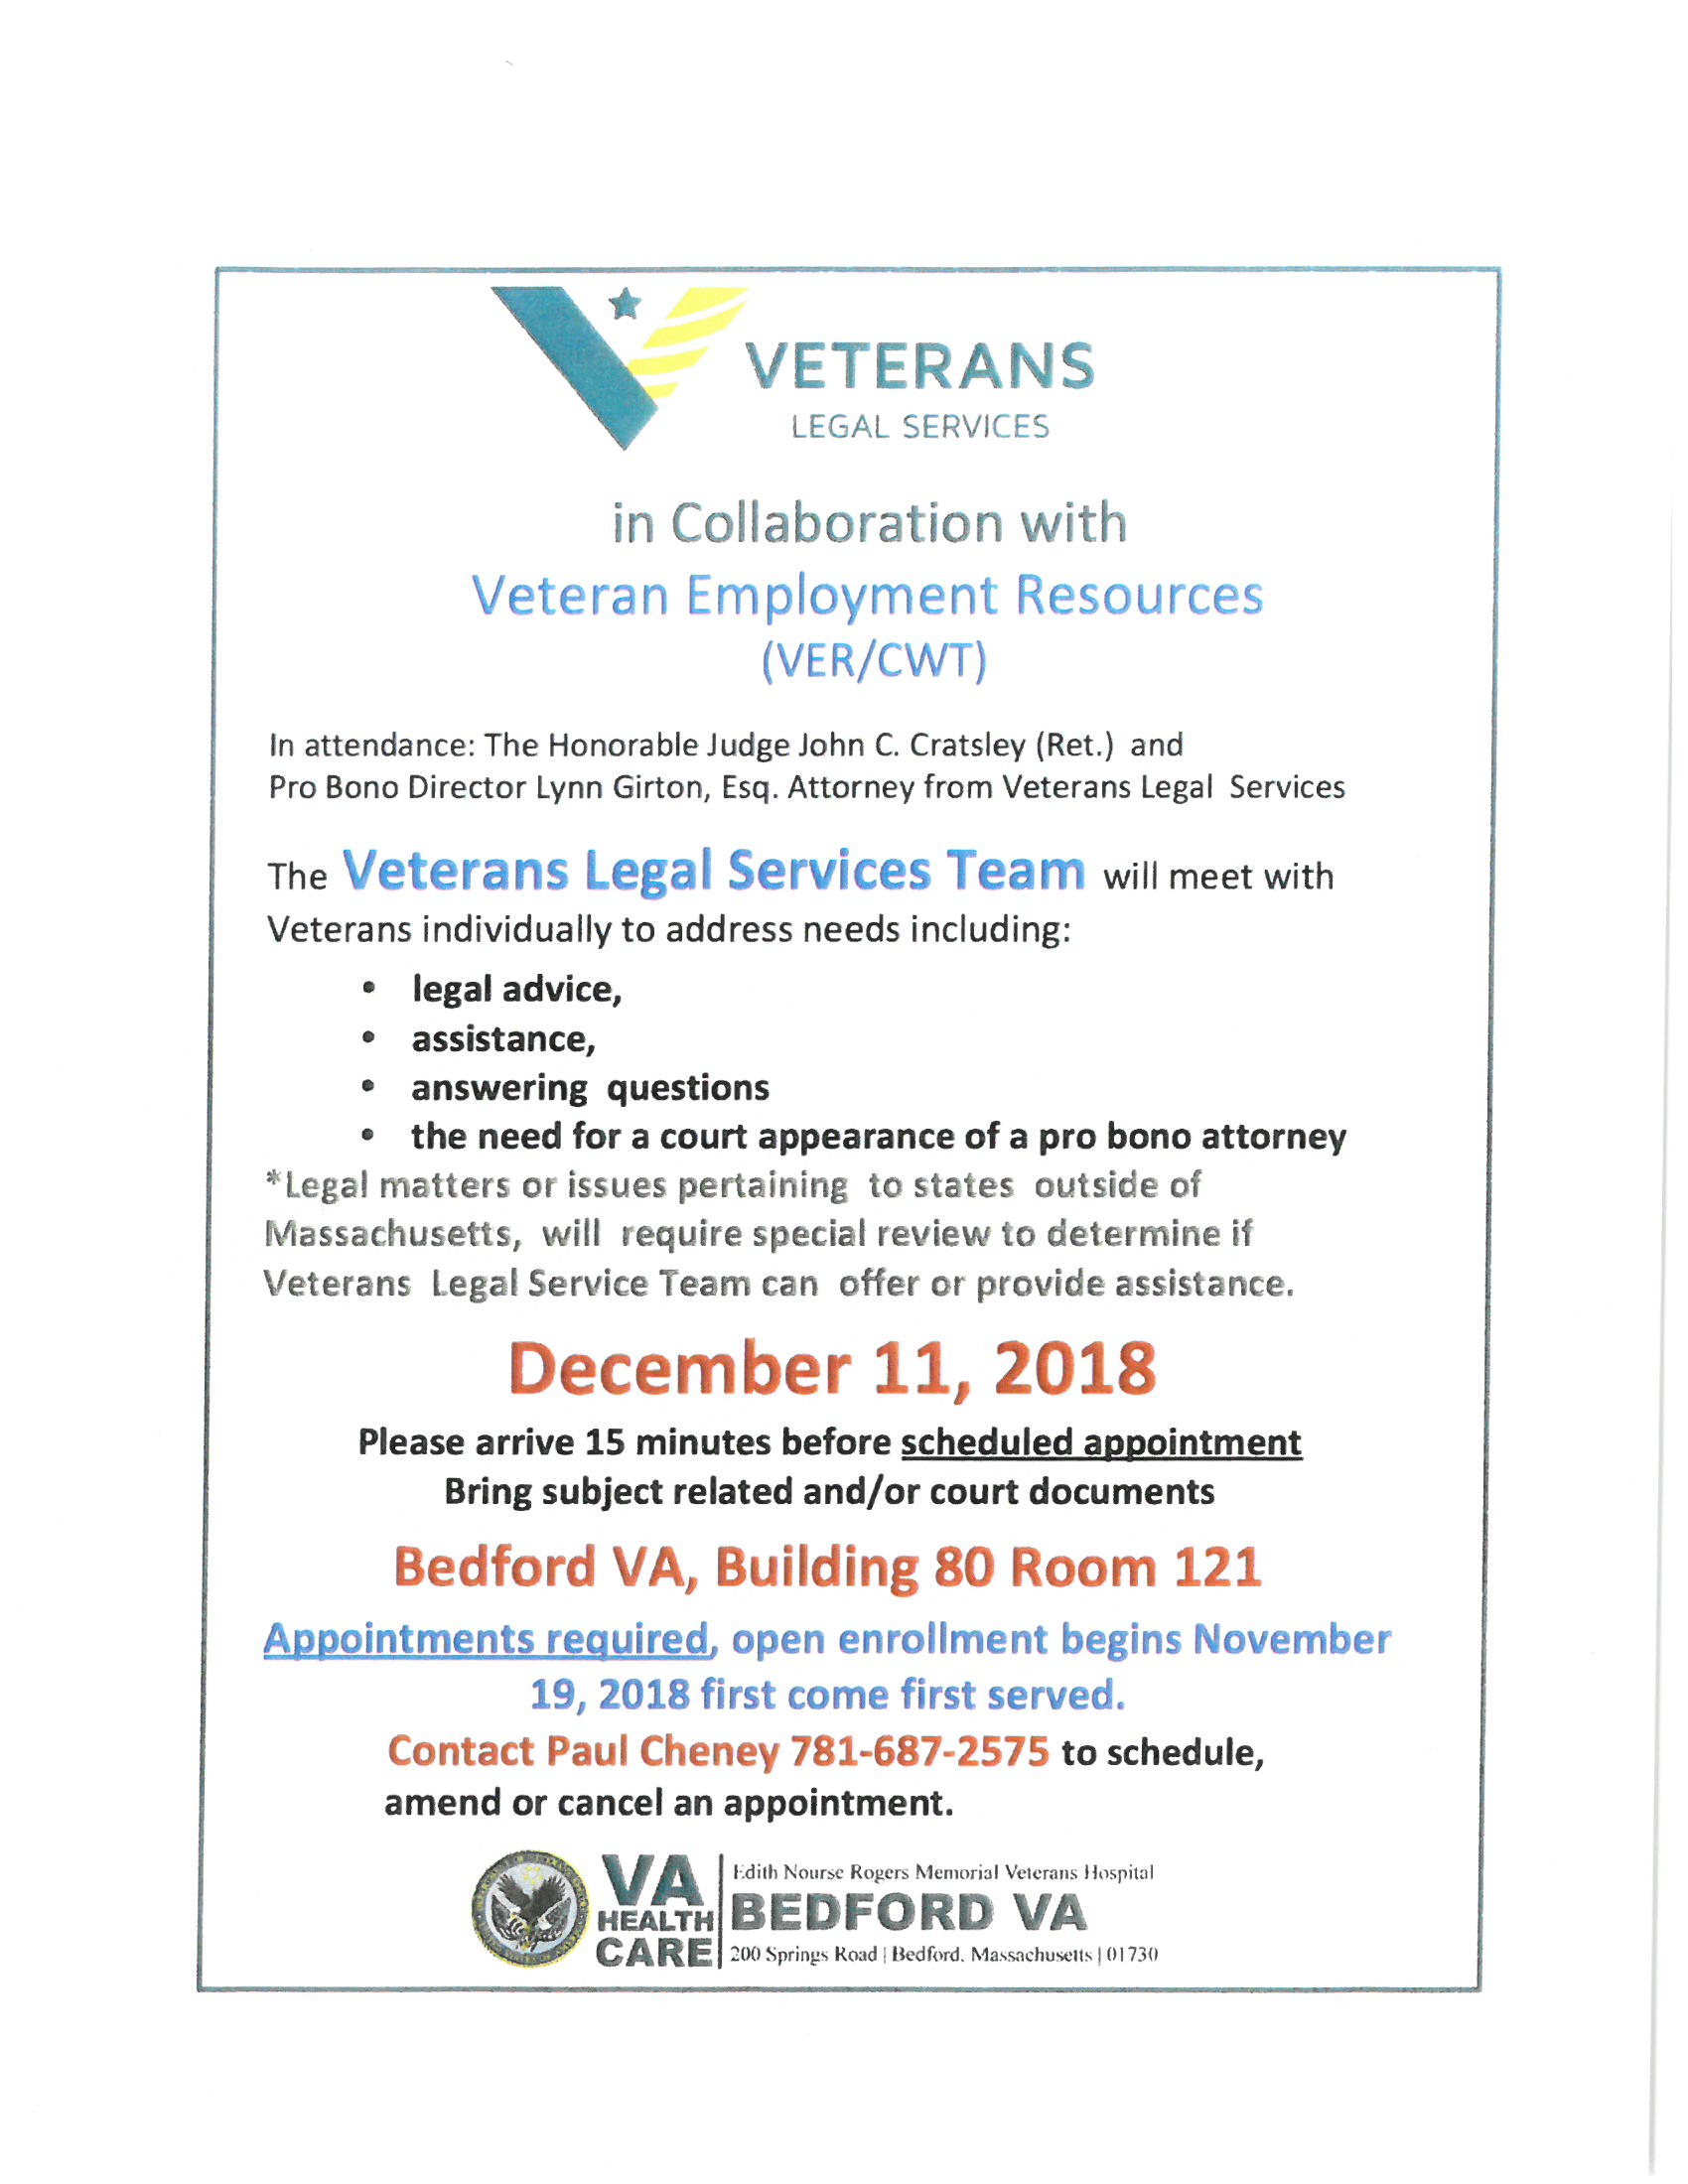 Veteran Legal Services at Bedford VA on December 11th.